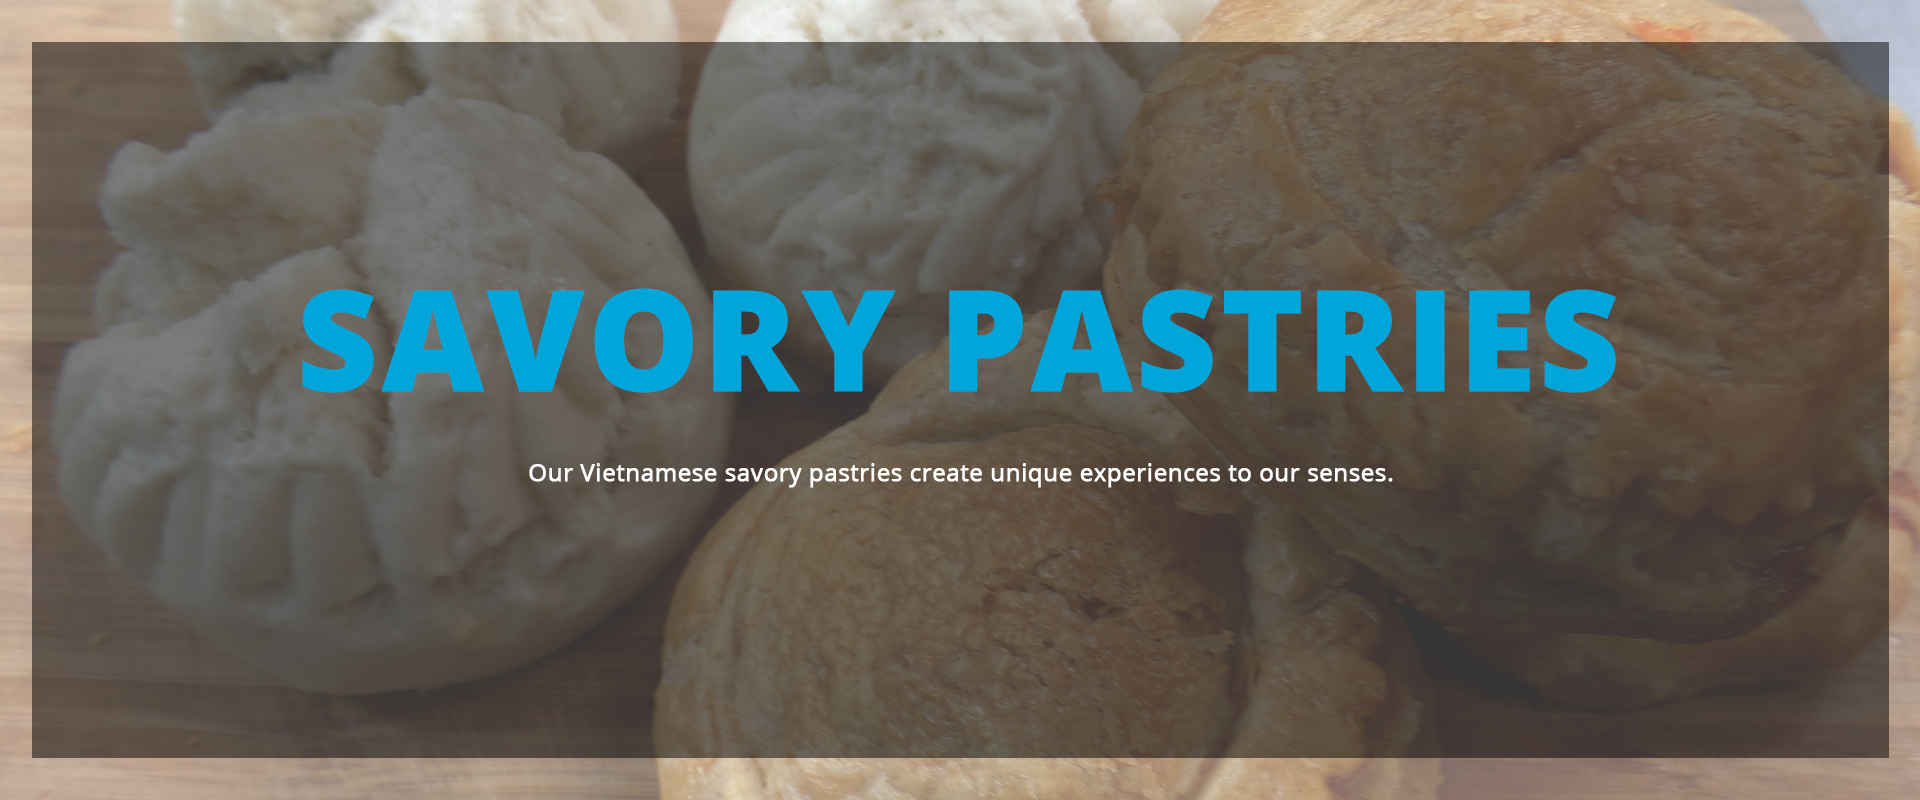 Savory Pastries Header Image